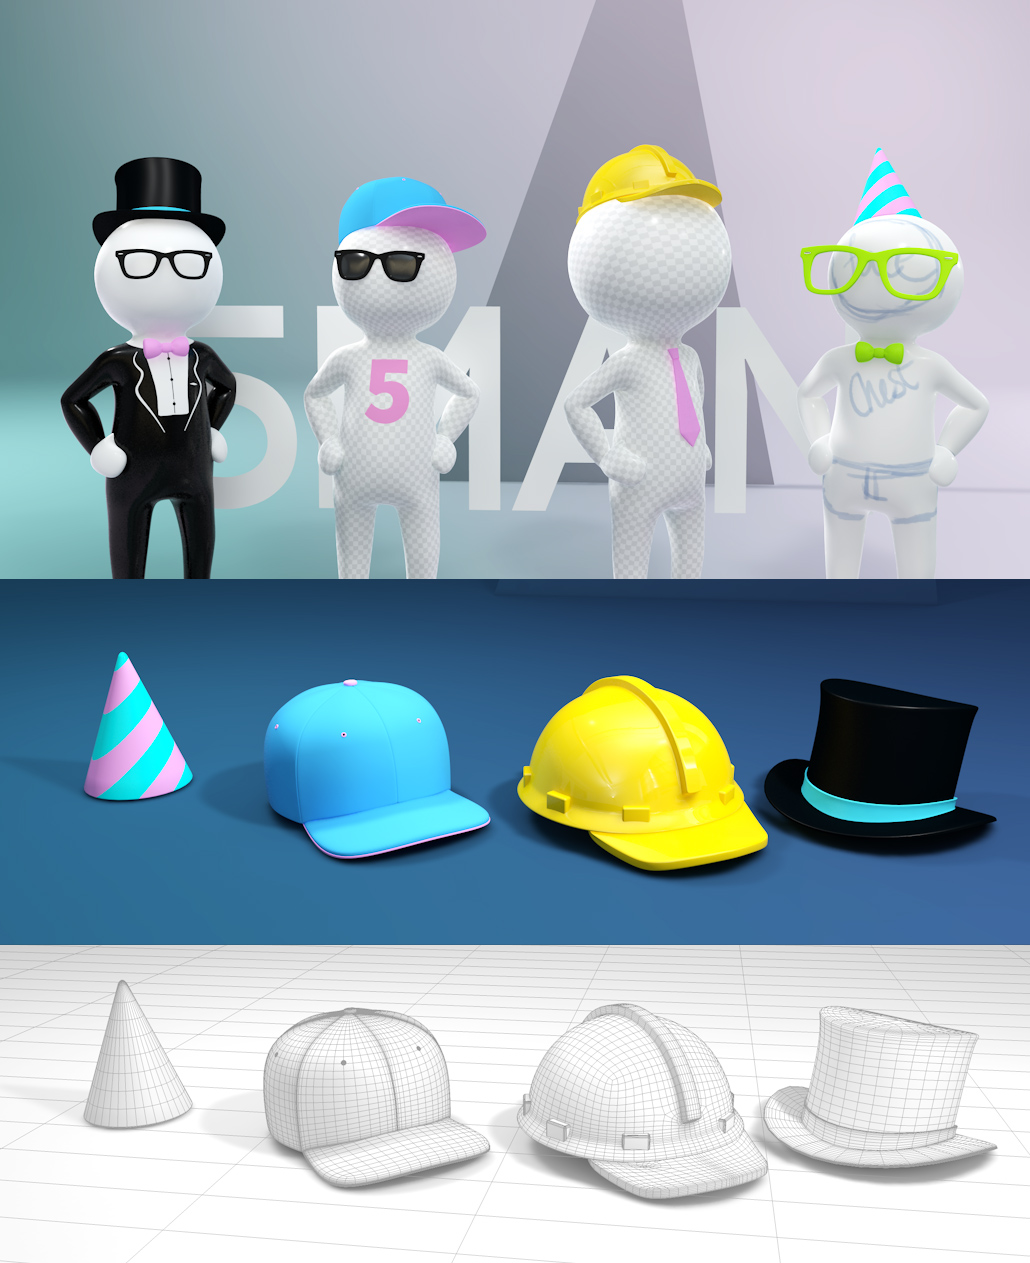 5man white c4d cinema 4d character rig dummy rigged man guy milk man hats suit